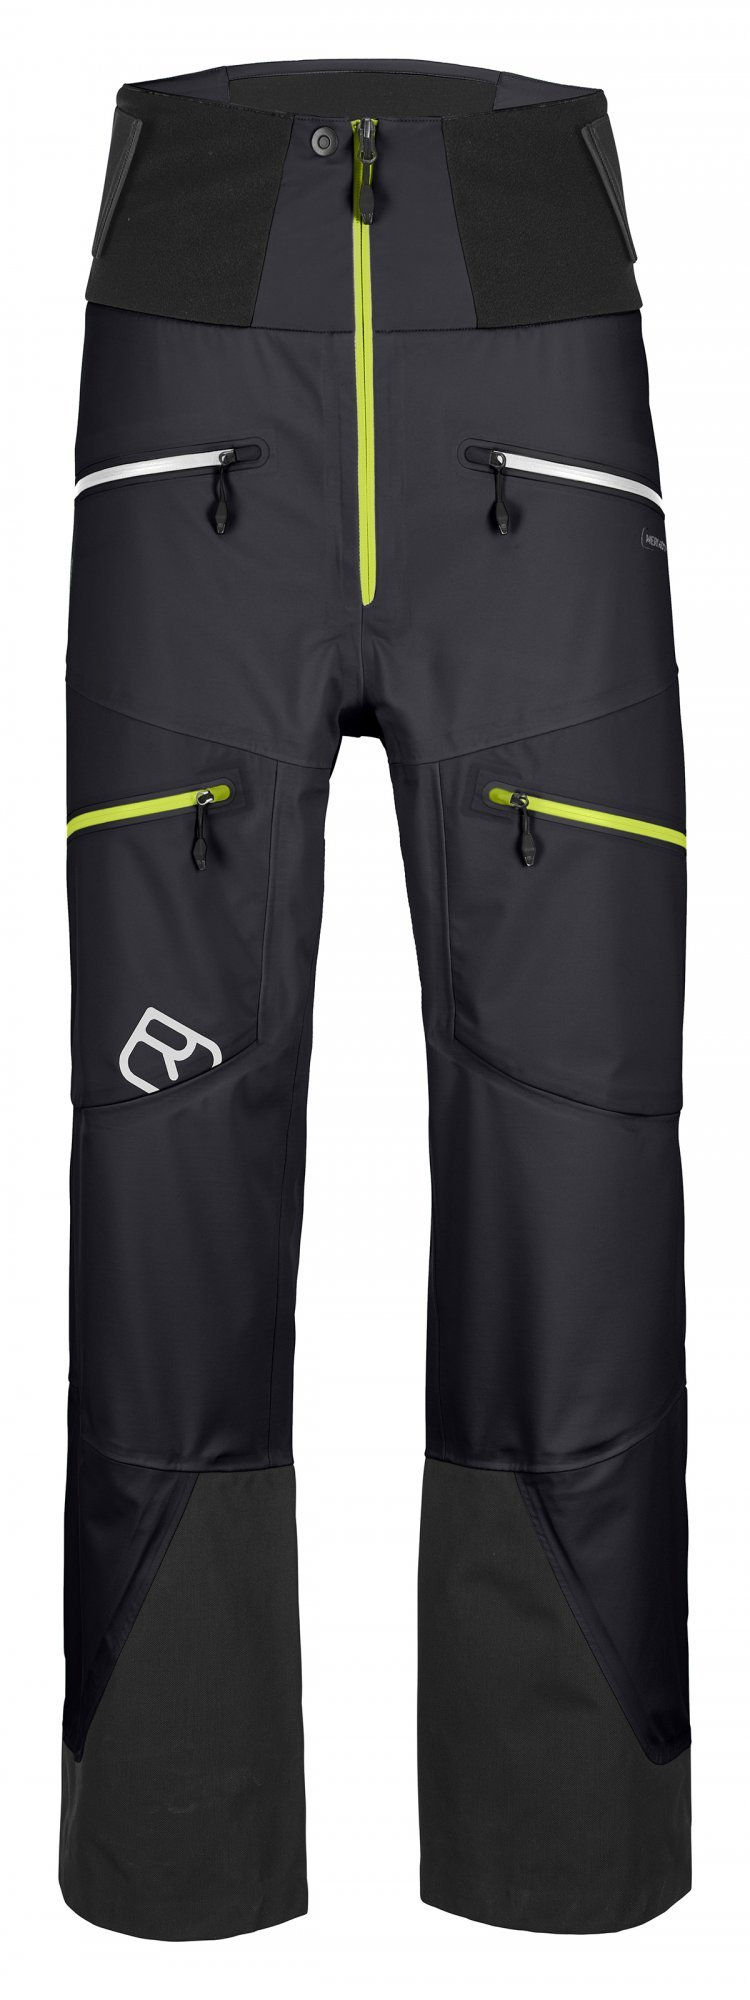 Ortovox 3L Guardian Shell pants, black raven